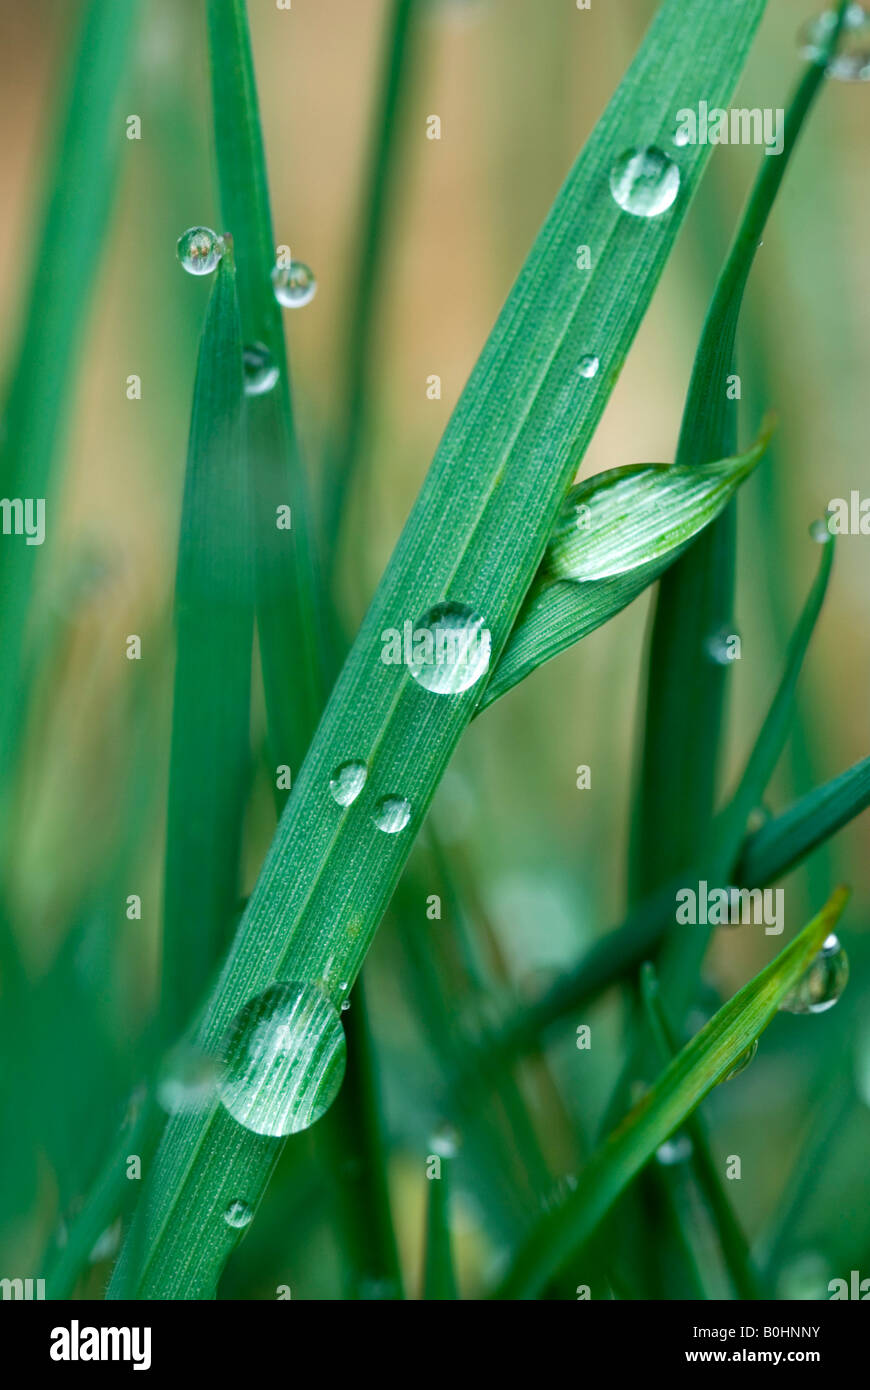 Water drops, waterdrops formed on blades of grass, Tyrol, Austria, Europe - Stock Image